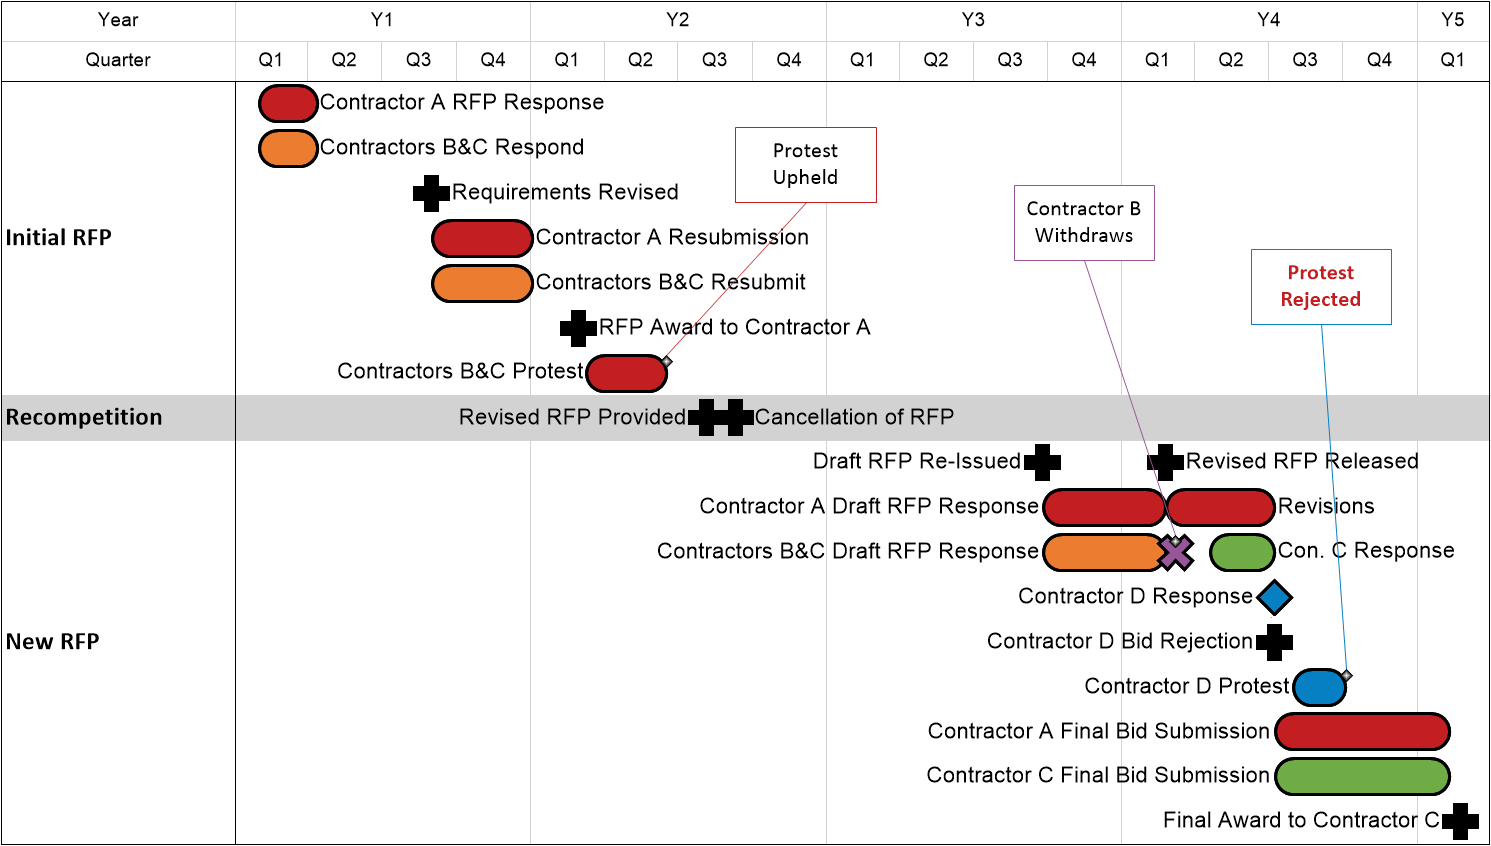 OnePager Pro RFP Timeline Made With Project Reporting